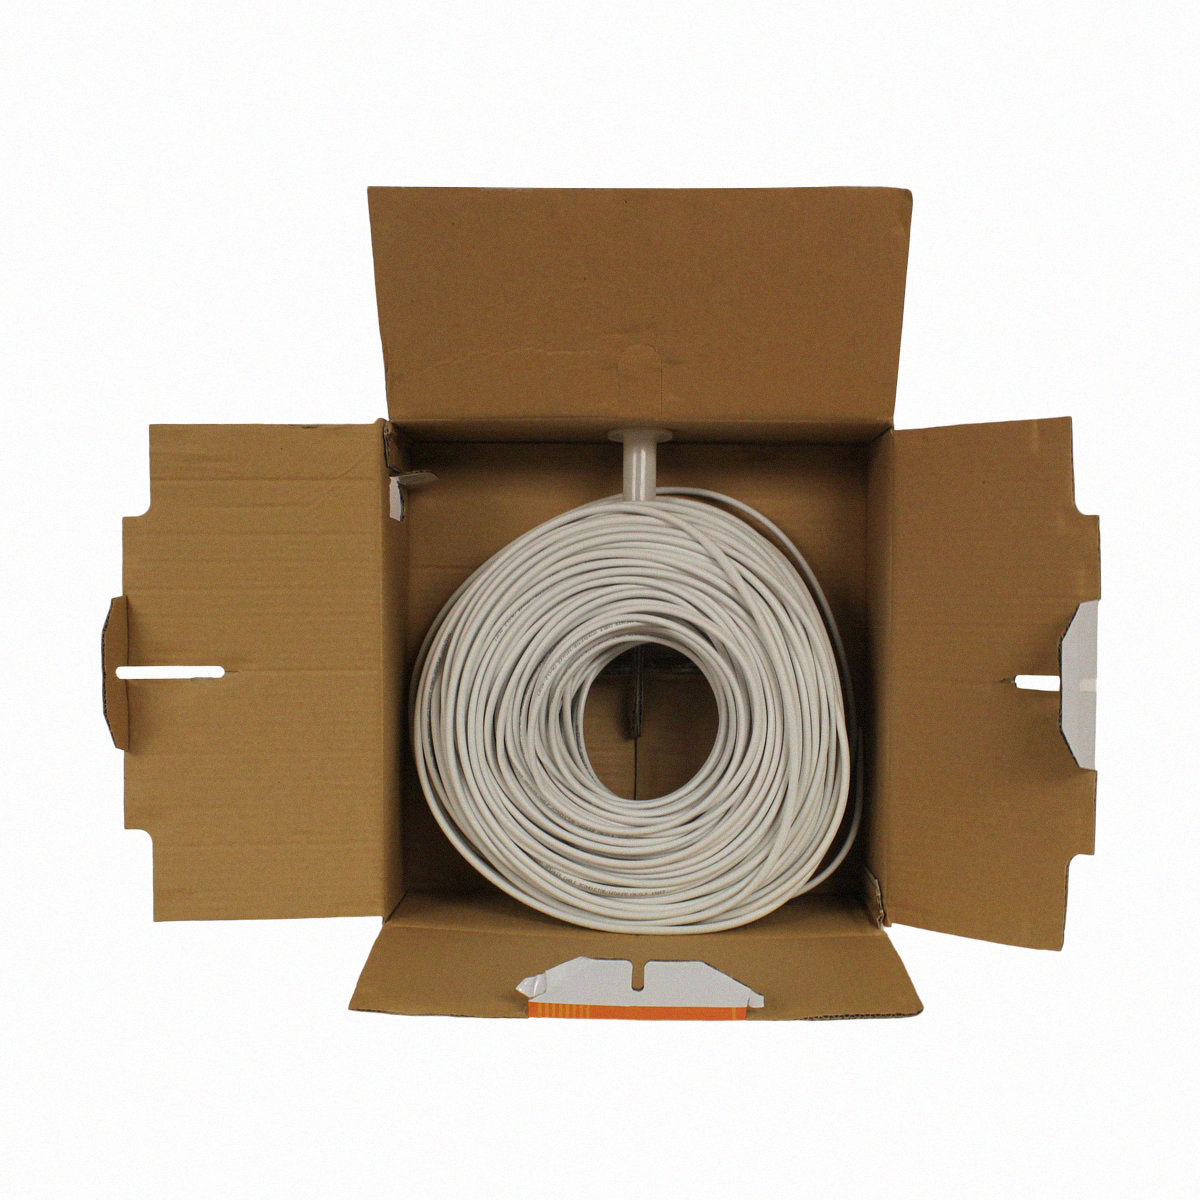 14 2 speaker cable 500ft 14awg gauge wire cl2 in wall bulk 2 conductor audio new ebay. Black Bedroom Furniture Sets. Home Design Ideas